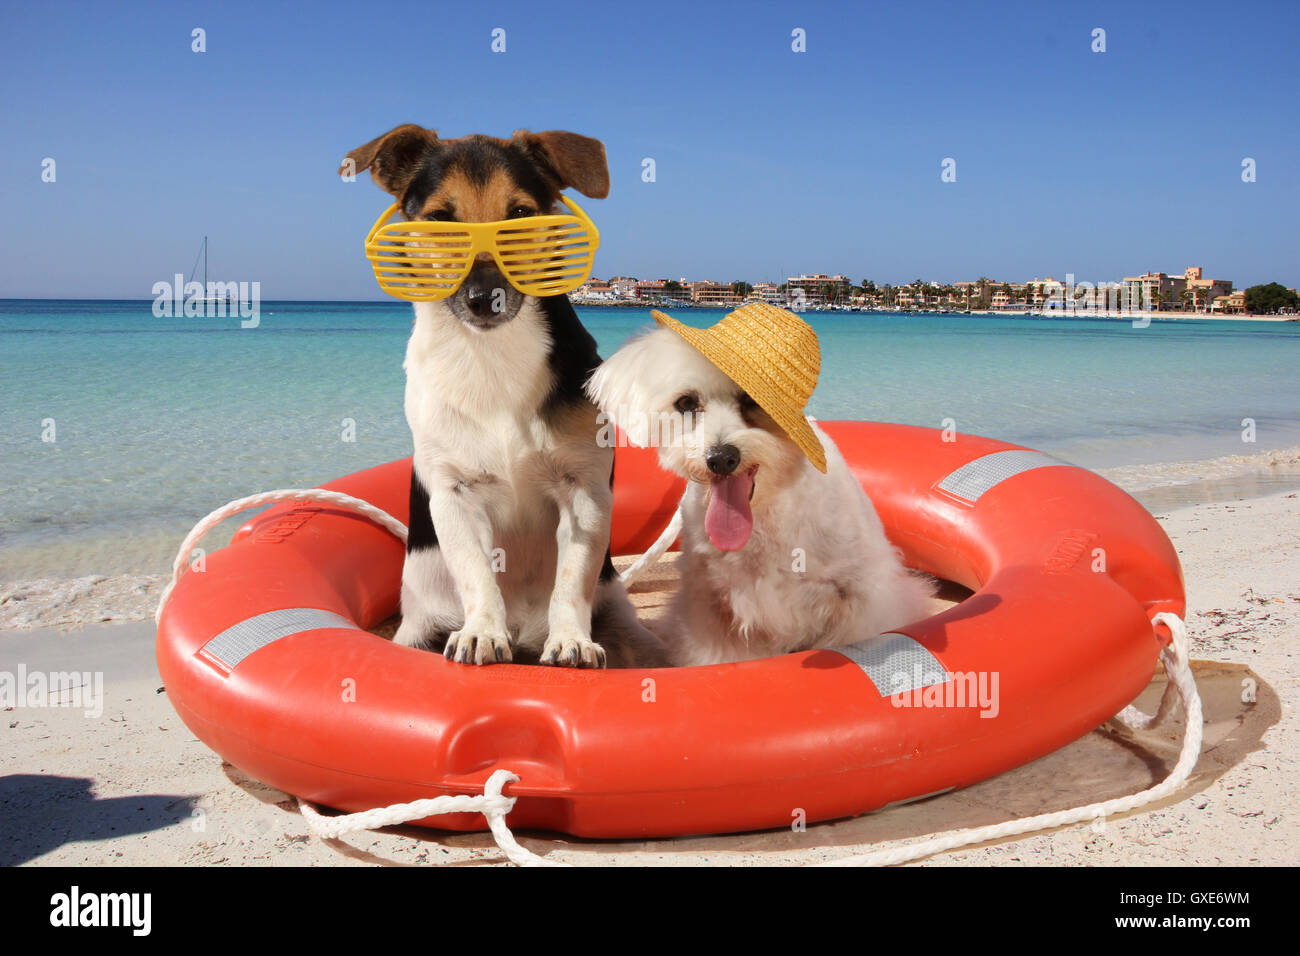 jack russell terrier and maltese dog sitting in a lifebuoy on the beach, with sunglasses and strawhat, funny dogs - Stock Image